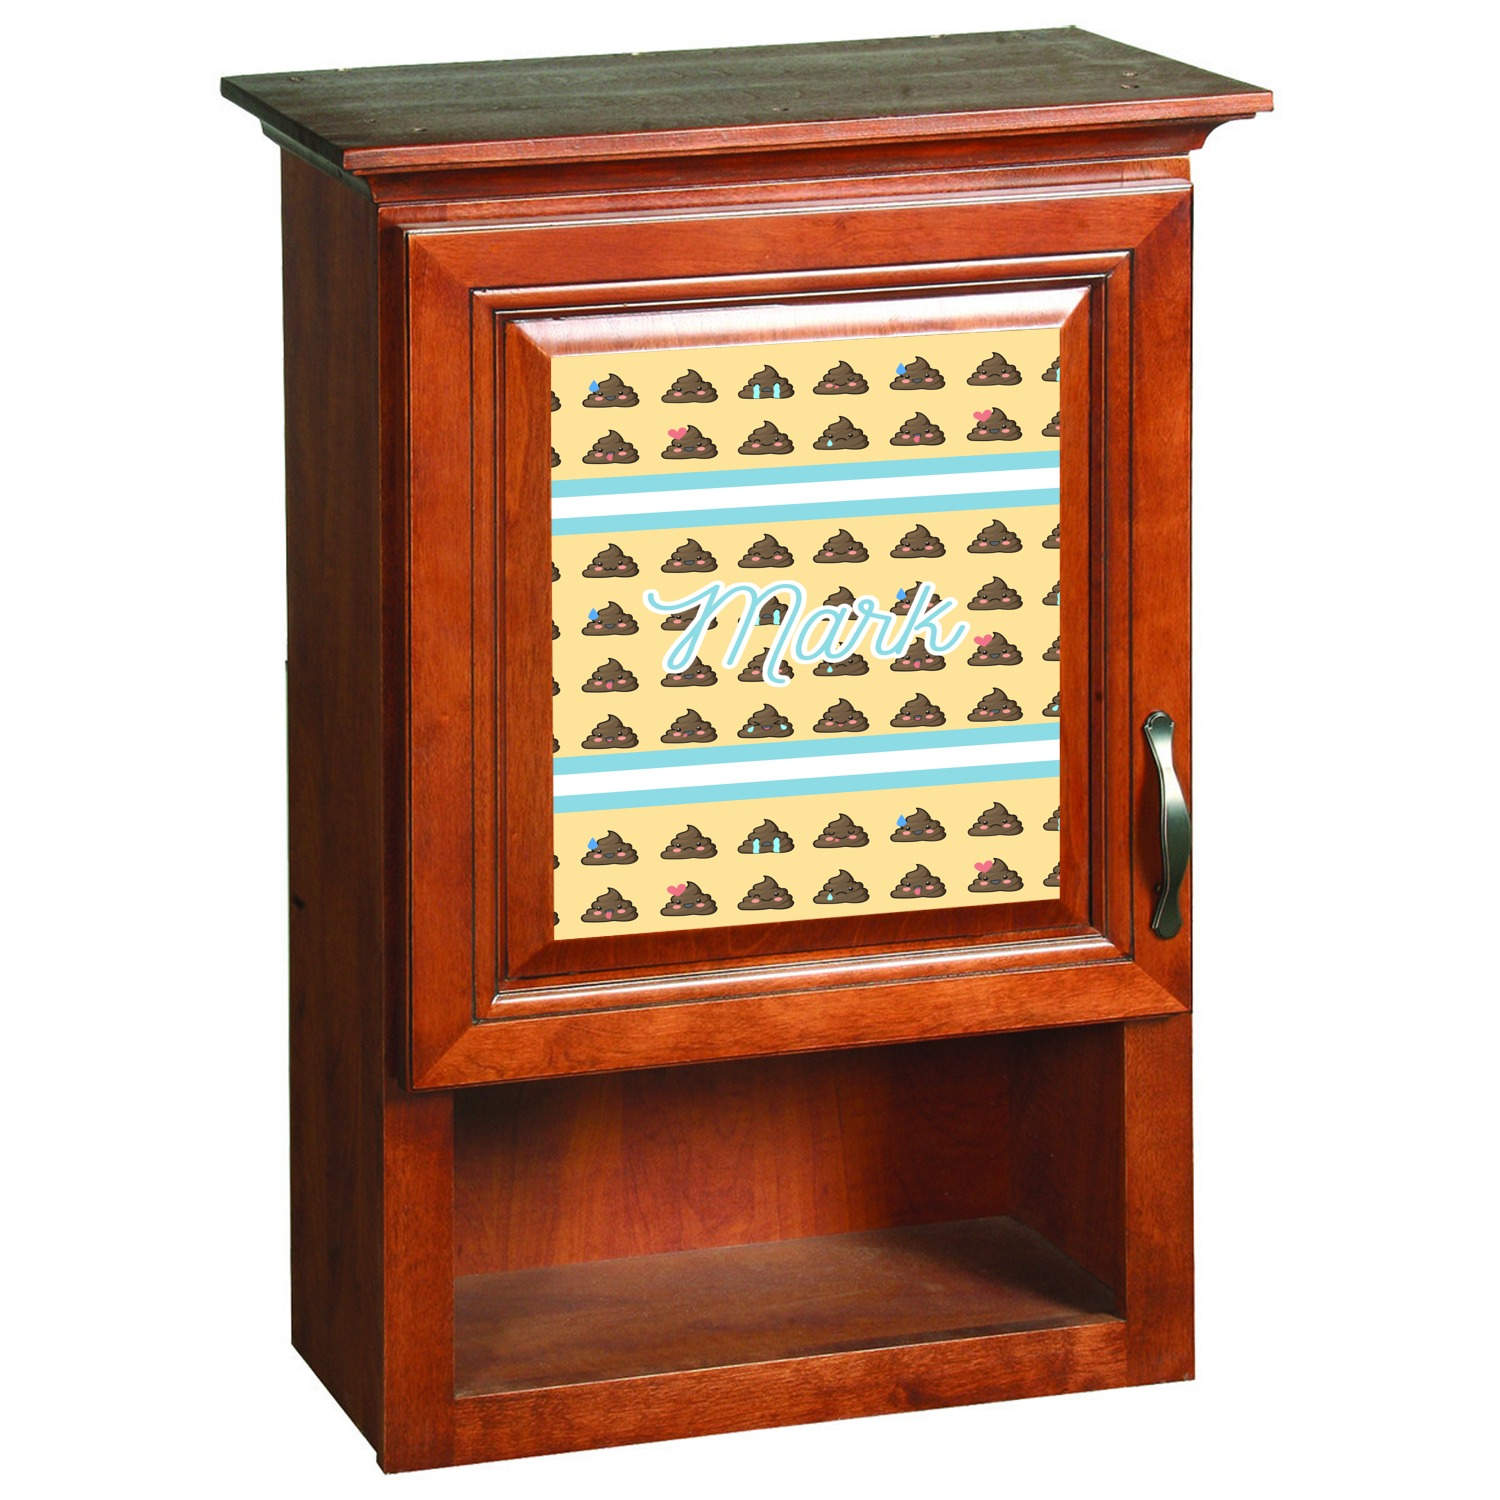 Poop emoji cabinet decal custom size personalized for Kitchen cabinets lowes with how to make decal stickers